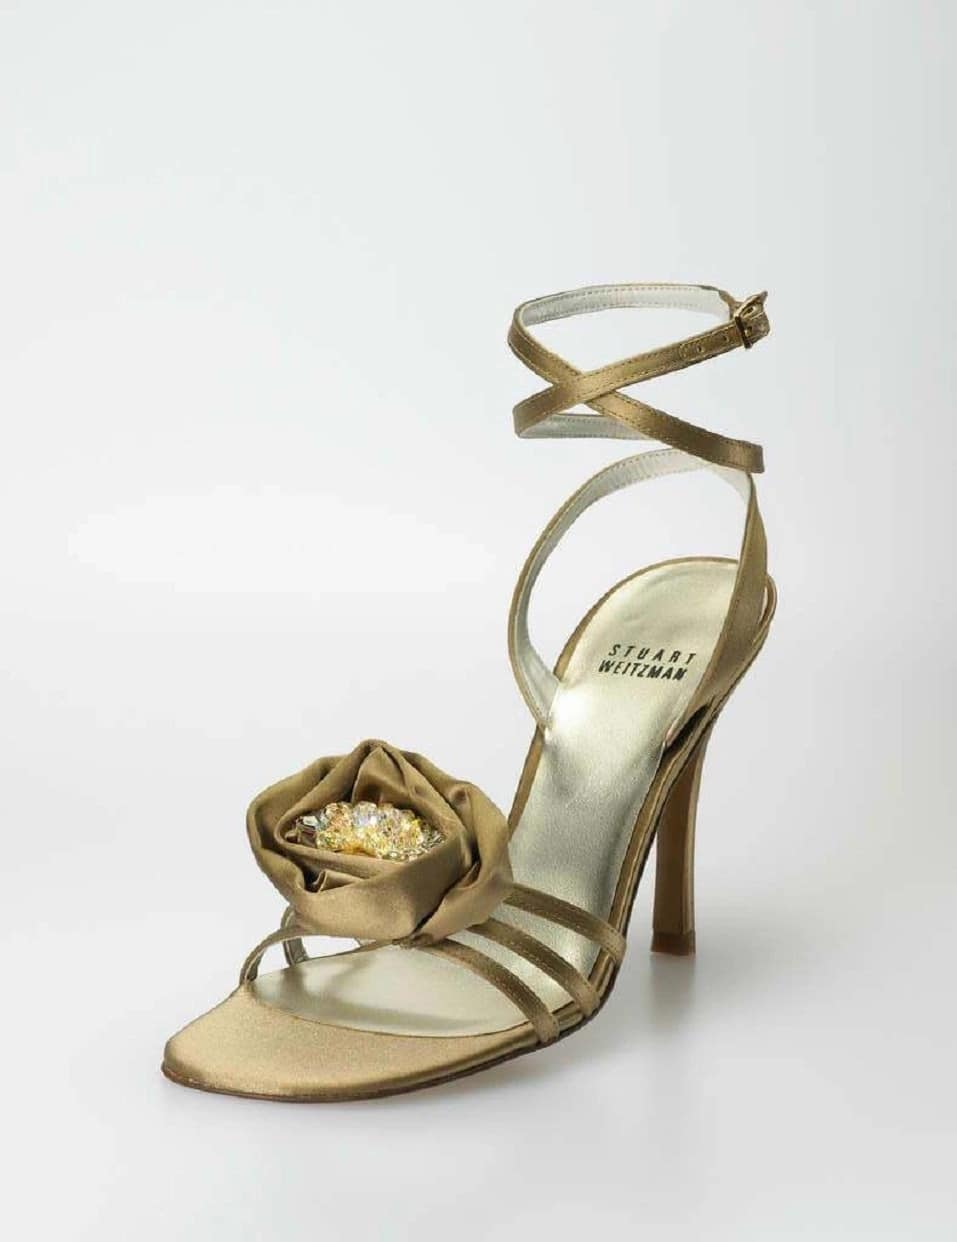 Stuart Weitzman Marilyn Monroe shoes - most expensive shoes in the world